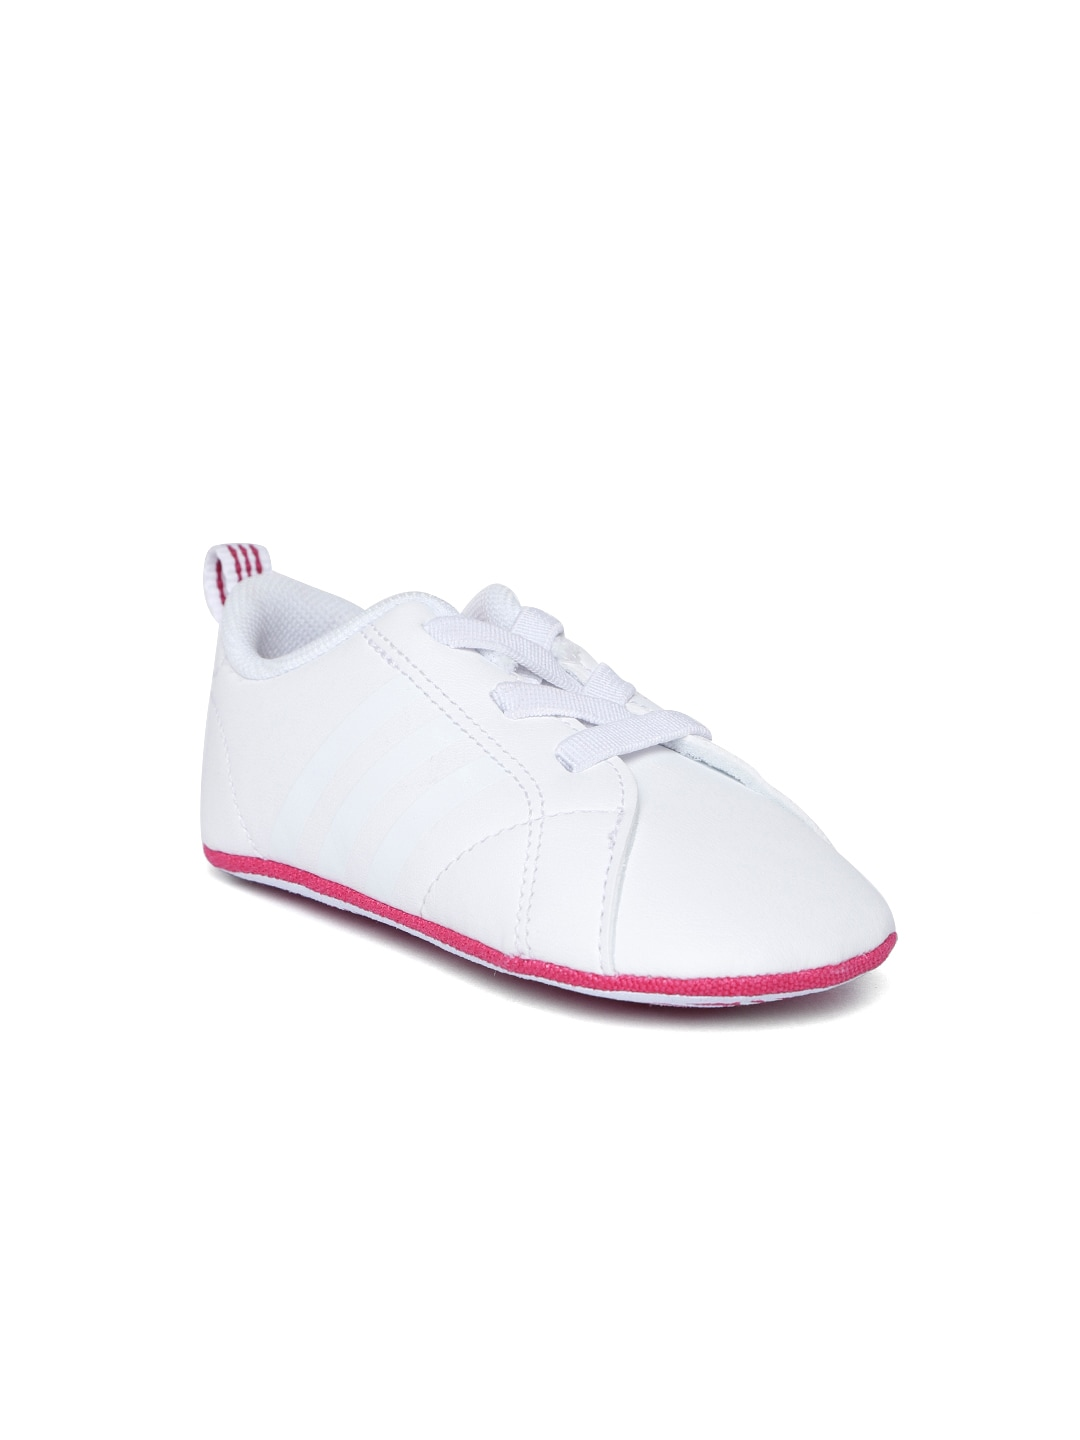 Boys Girls Adidas - Buy Boys Girls Adidas online in India c0f05e38b